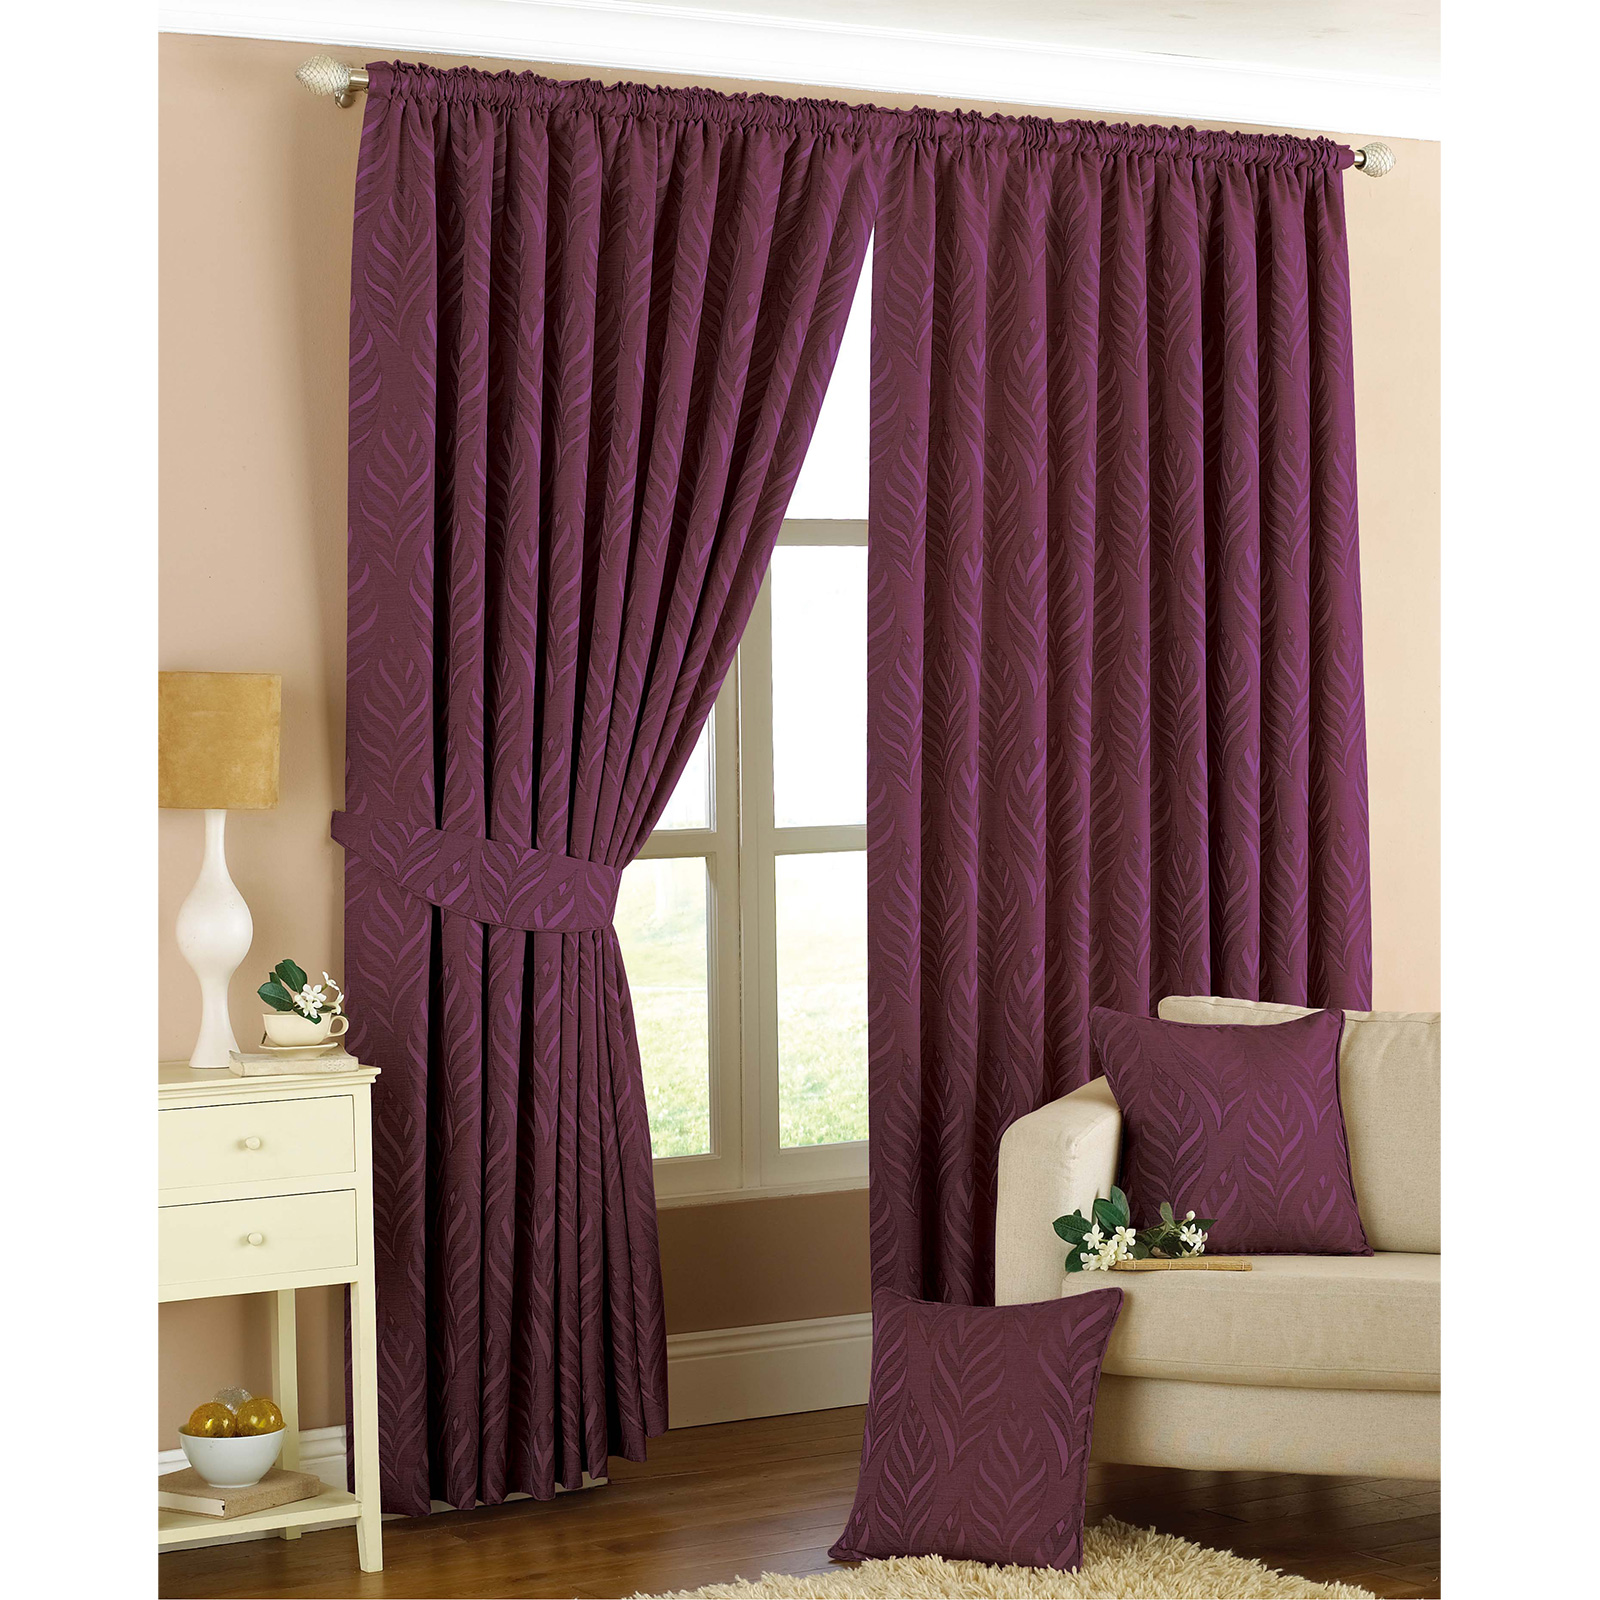 Woven Lined Pencil Pleat Curtain